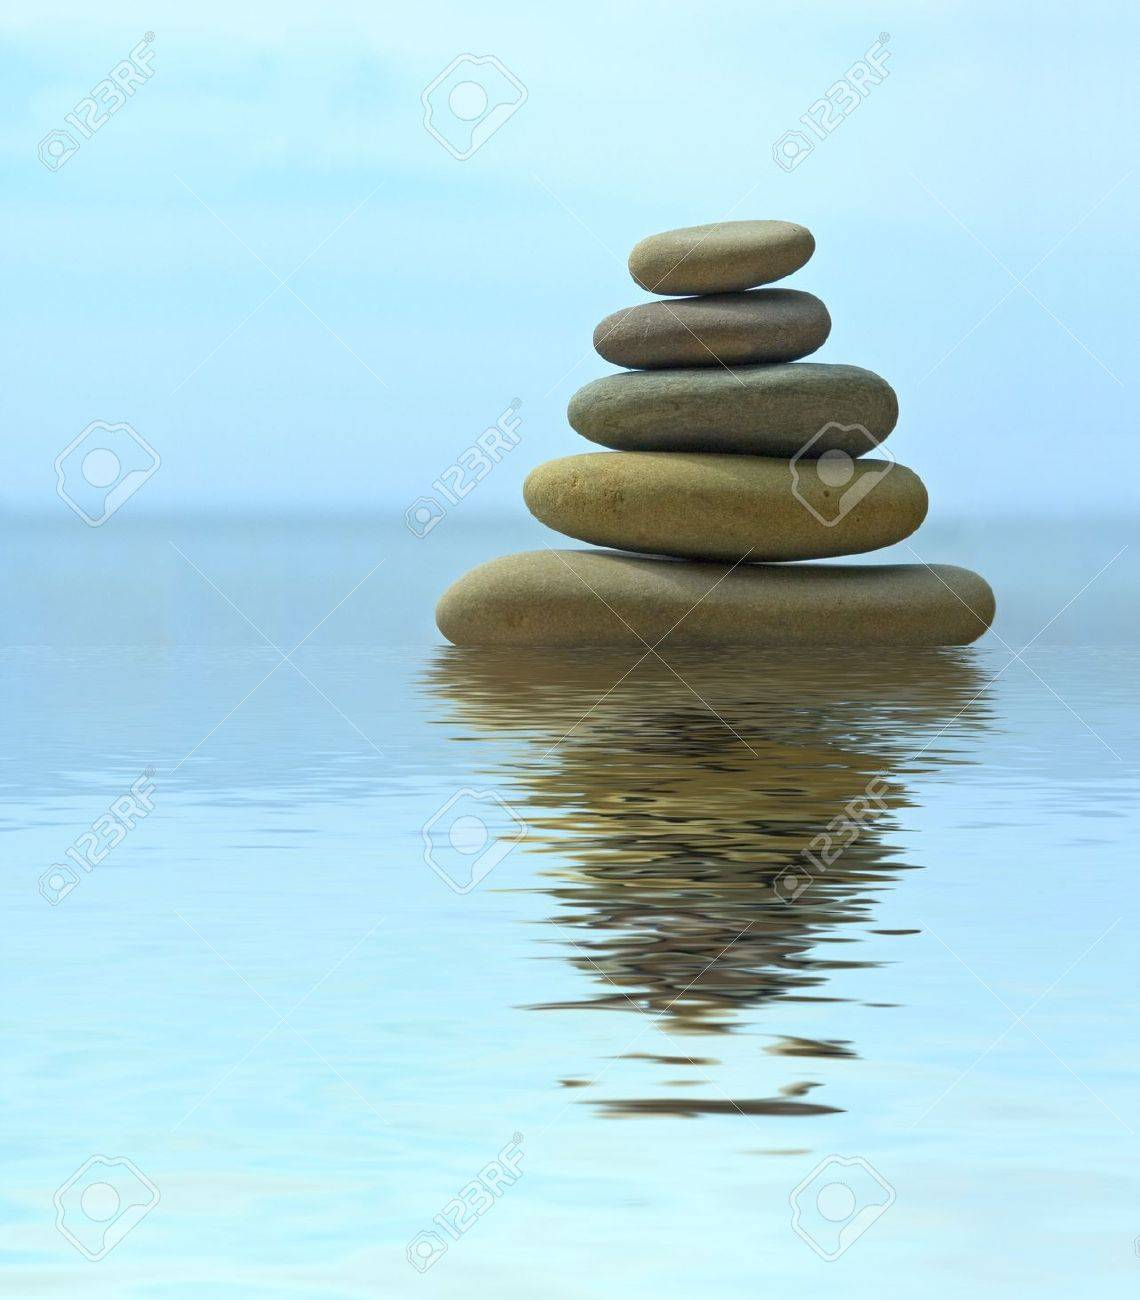 Pebble stack reflecting in the water Stock Photo - 3057623